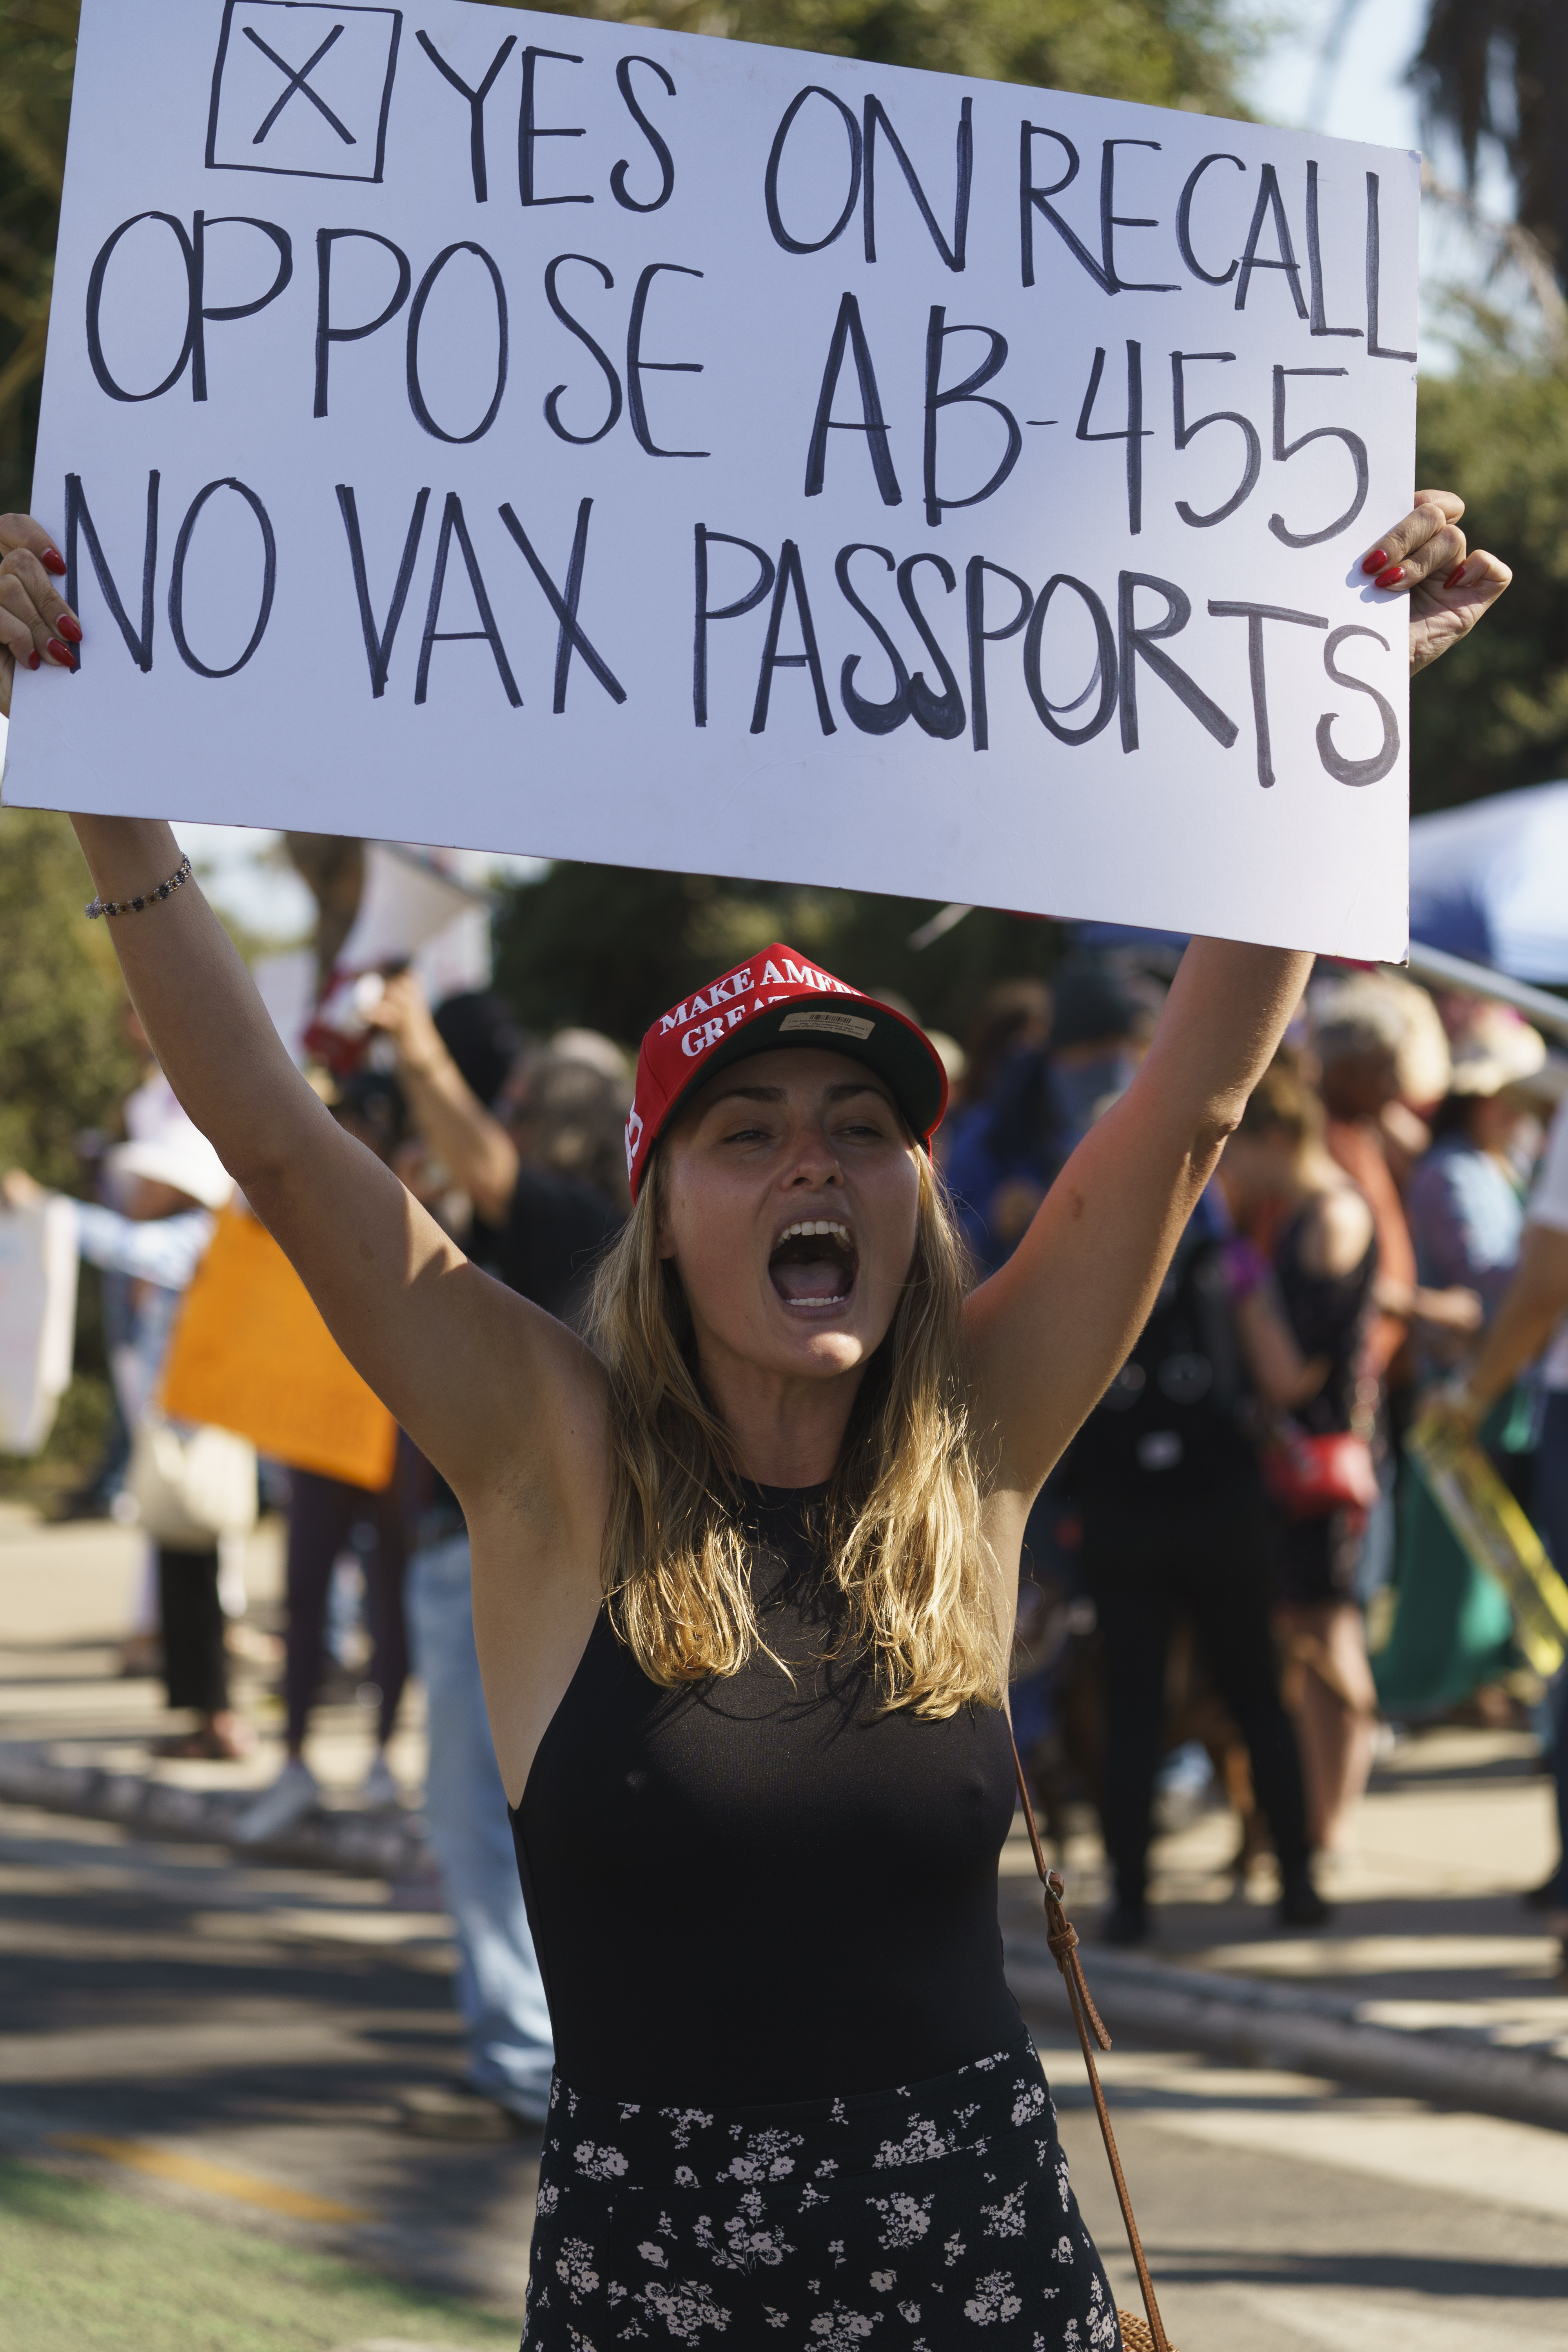 Demonstrators rally against a vaccine mandate for passports.